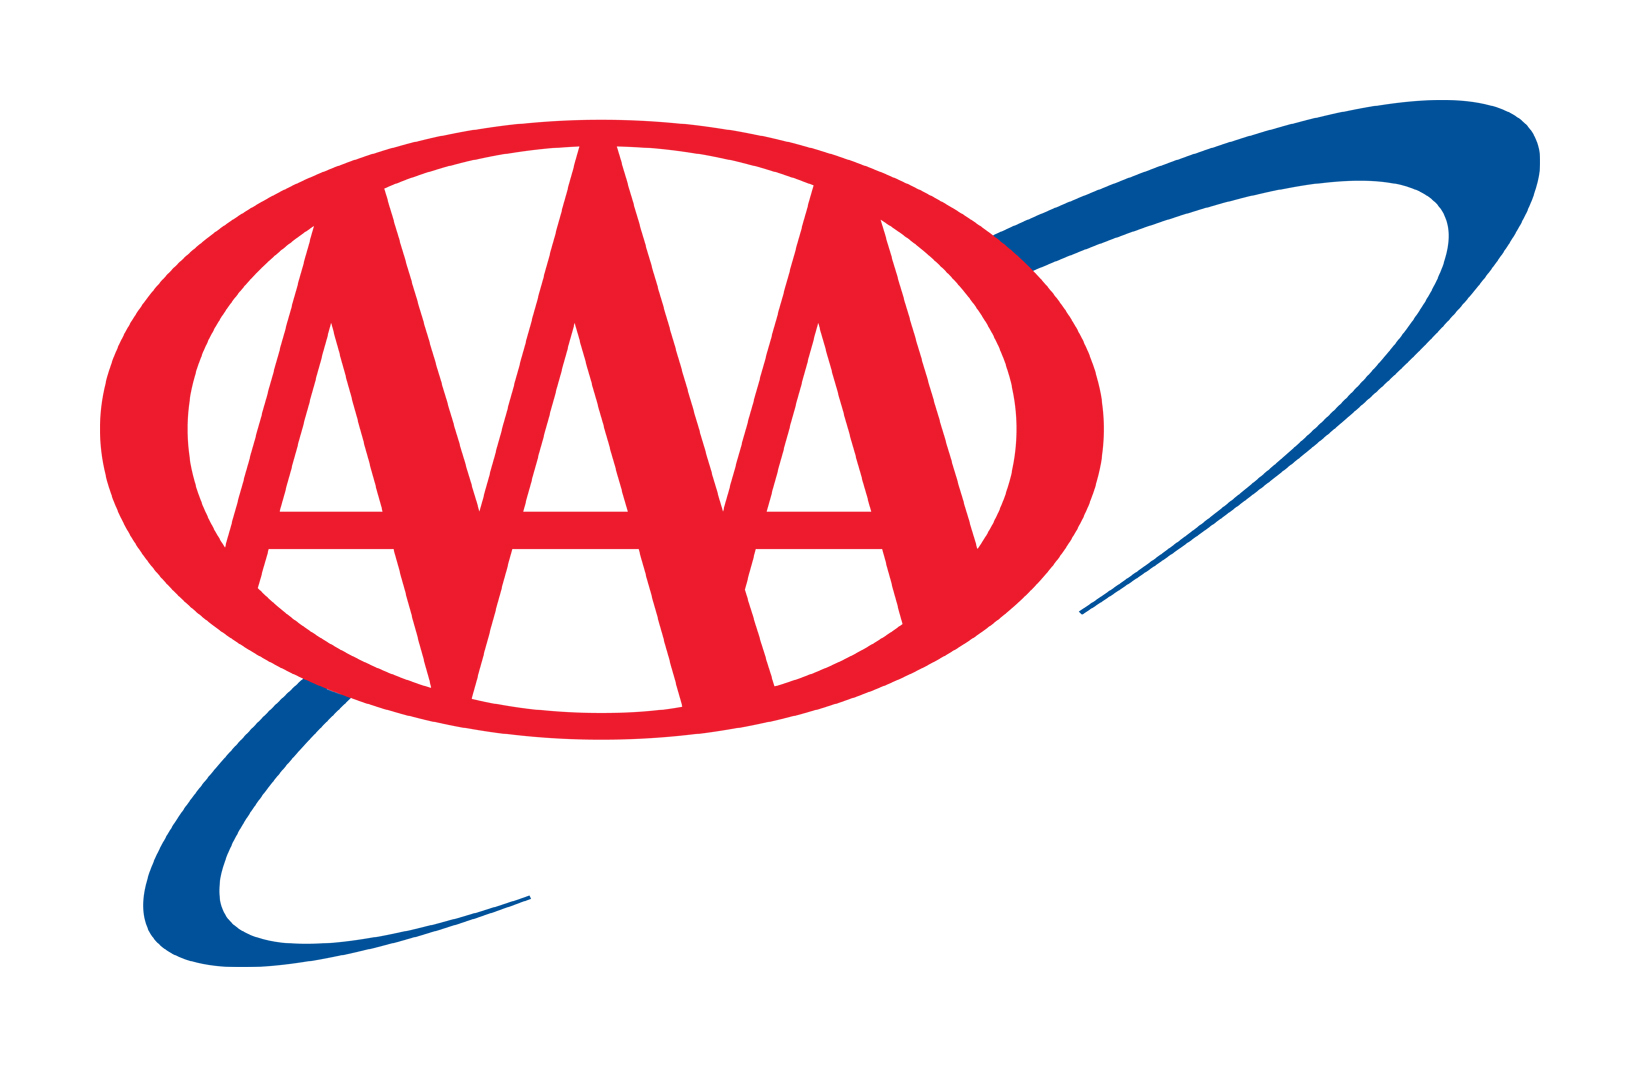 Auto club insurance association claims phone number